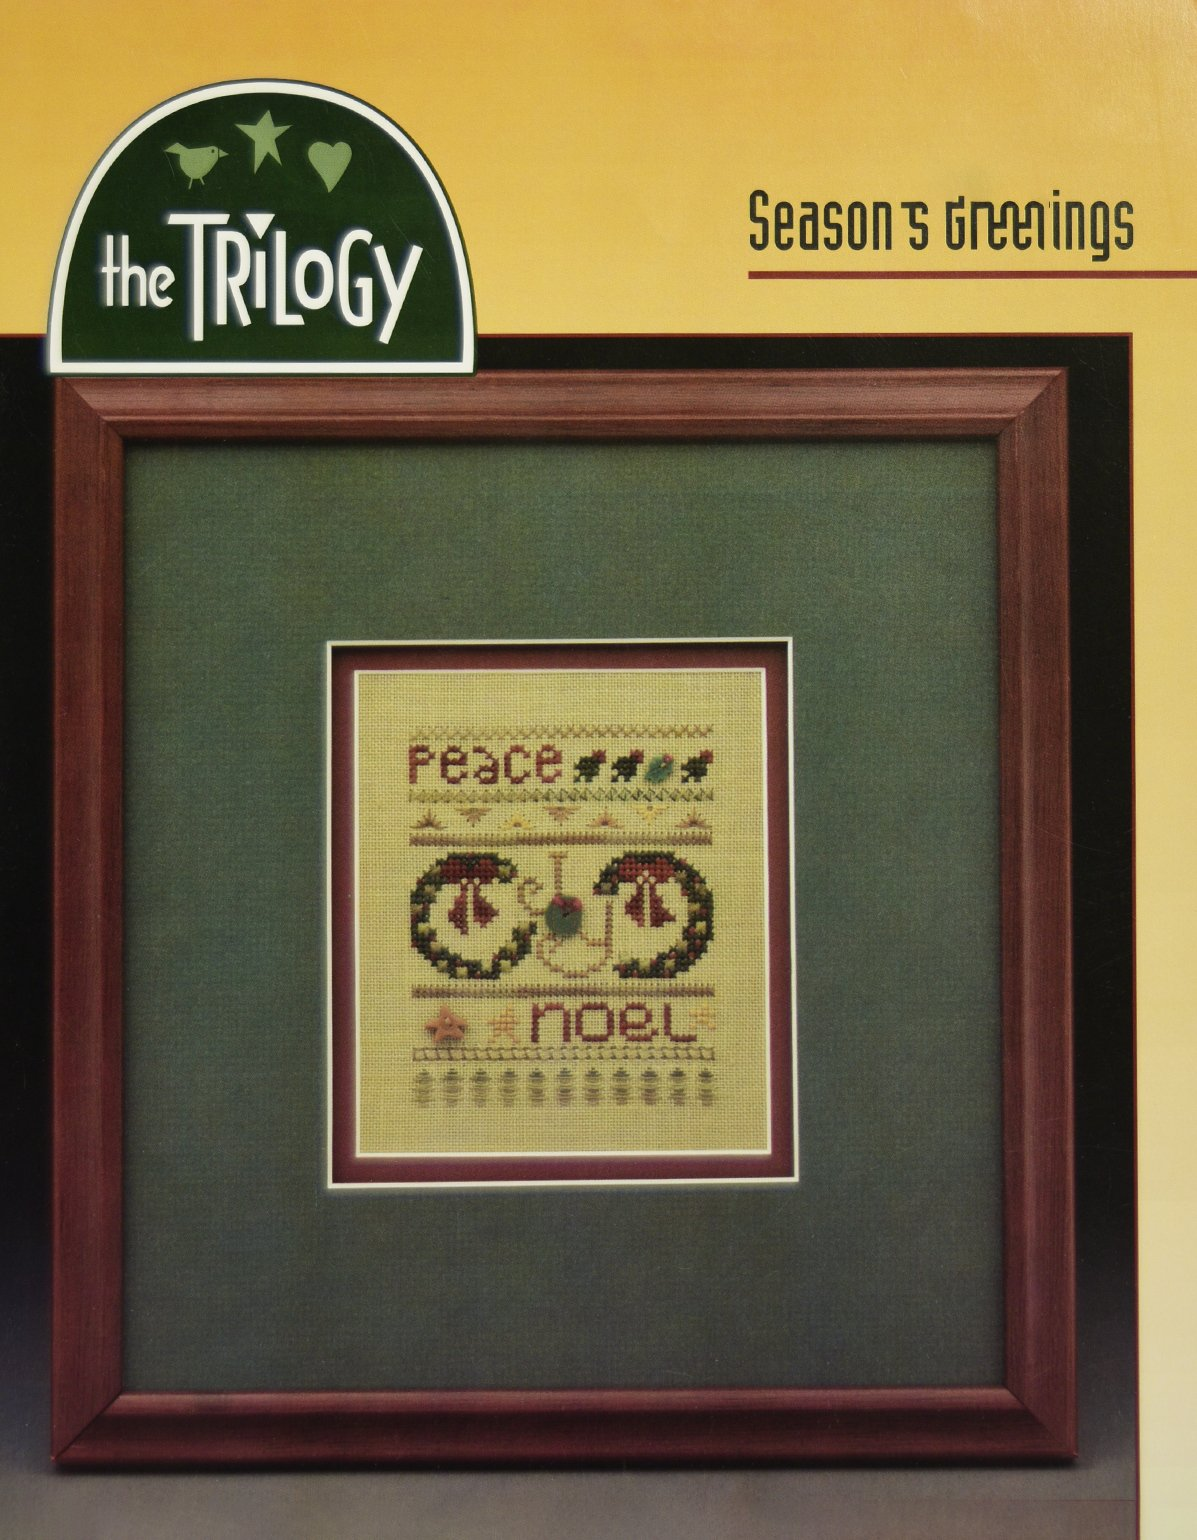 Season's Greetings by The Trilogy